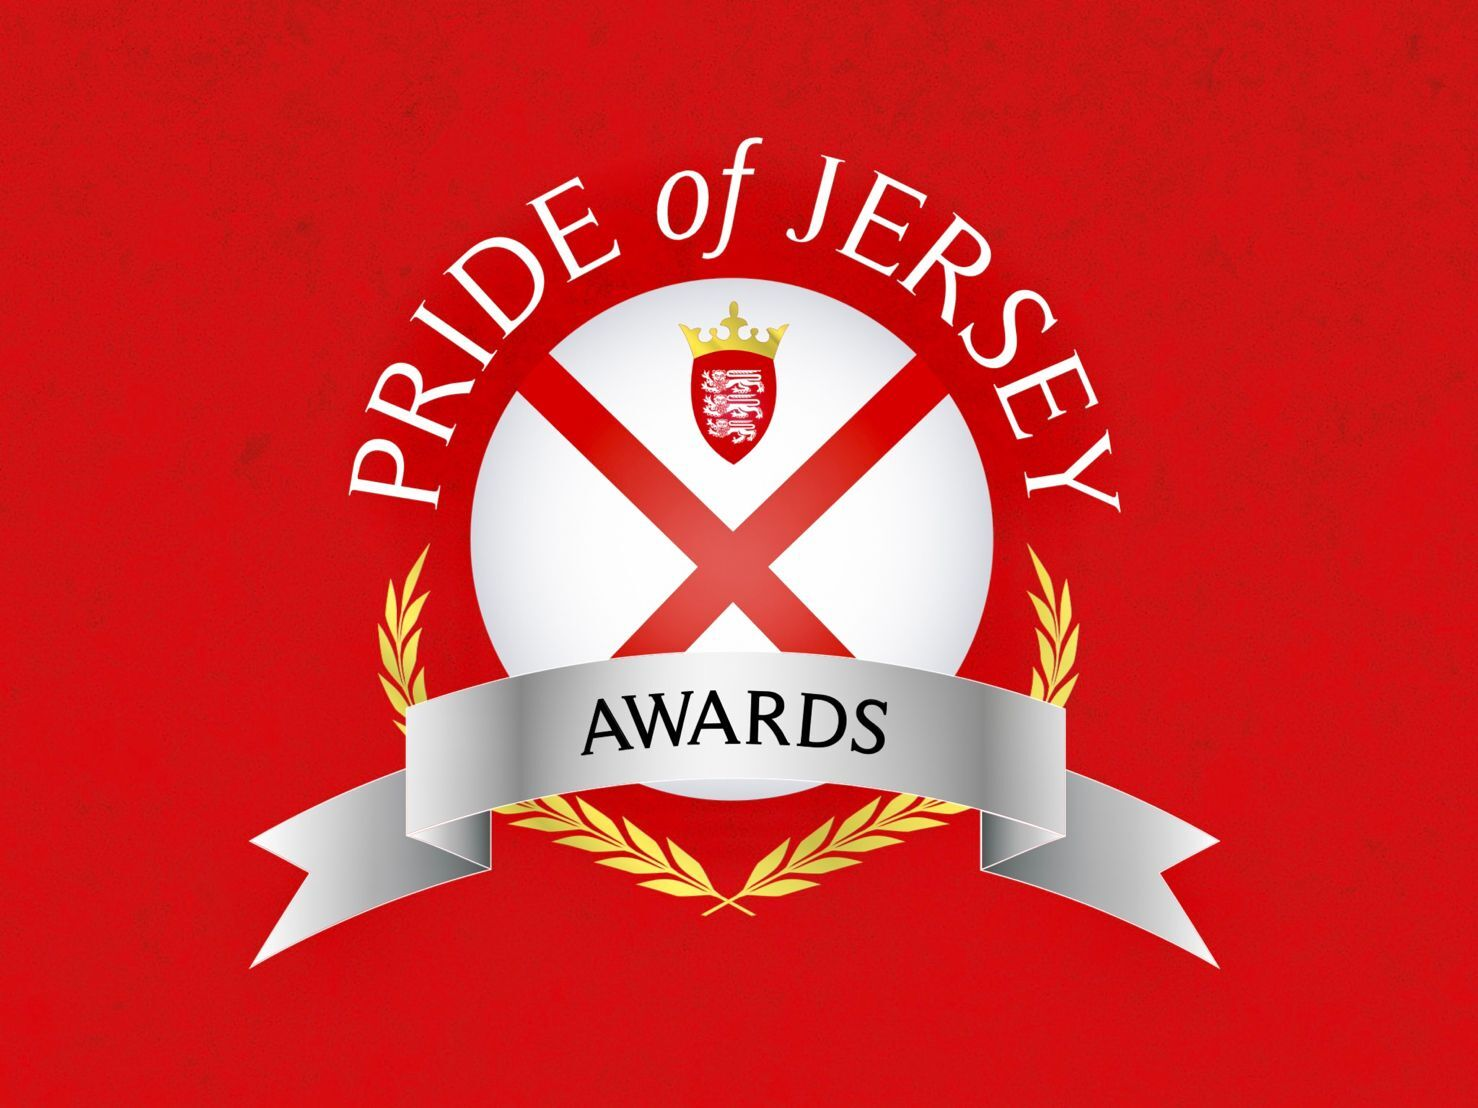 Pride of Jersey Awards